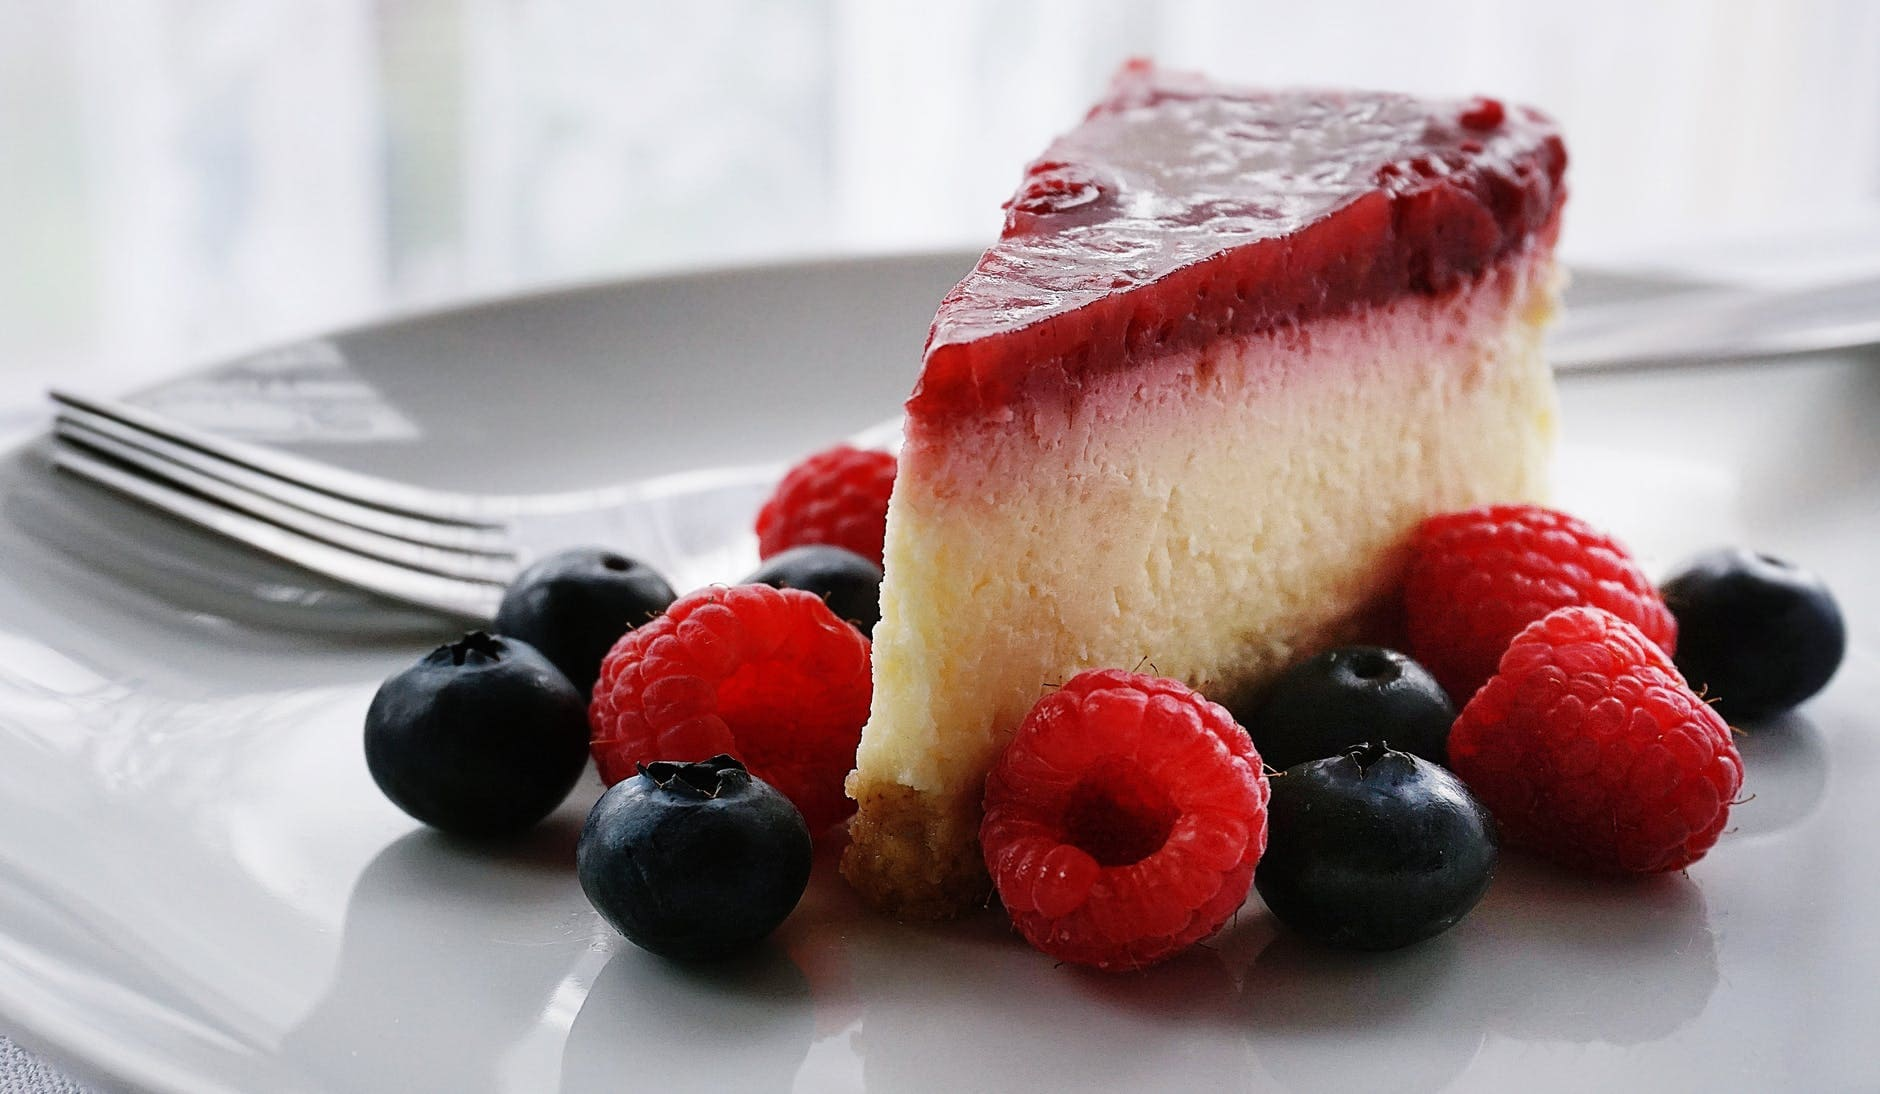 How to make a crisp cake without eggs